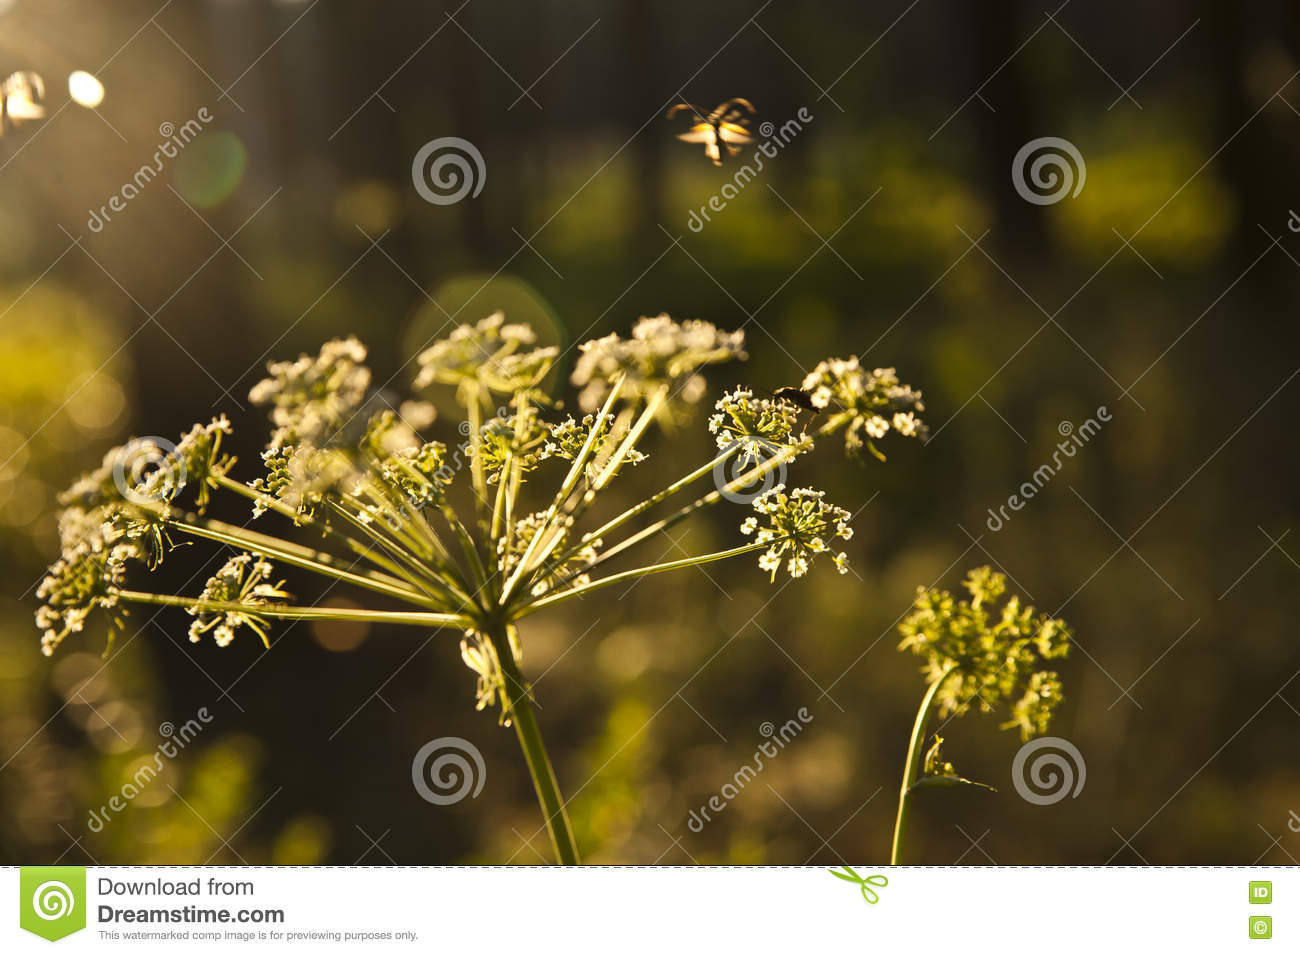 Inflorescence Of An Umbelliferous Plant Stock Photo.